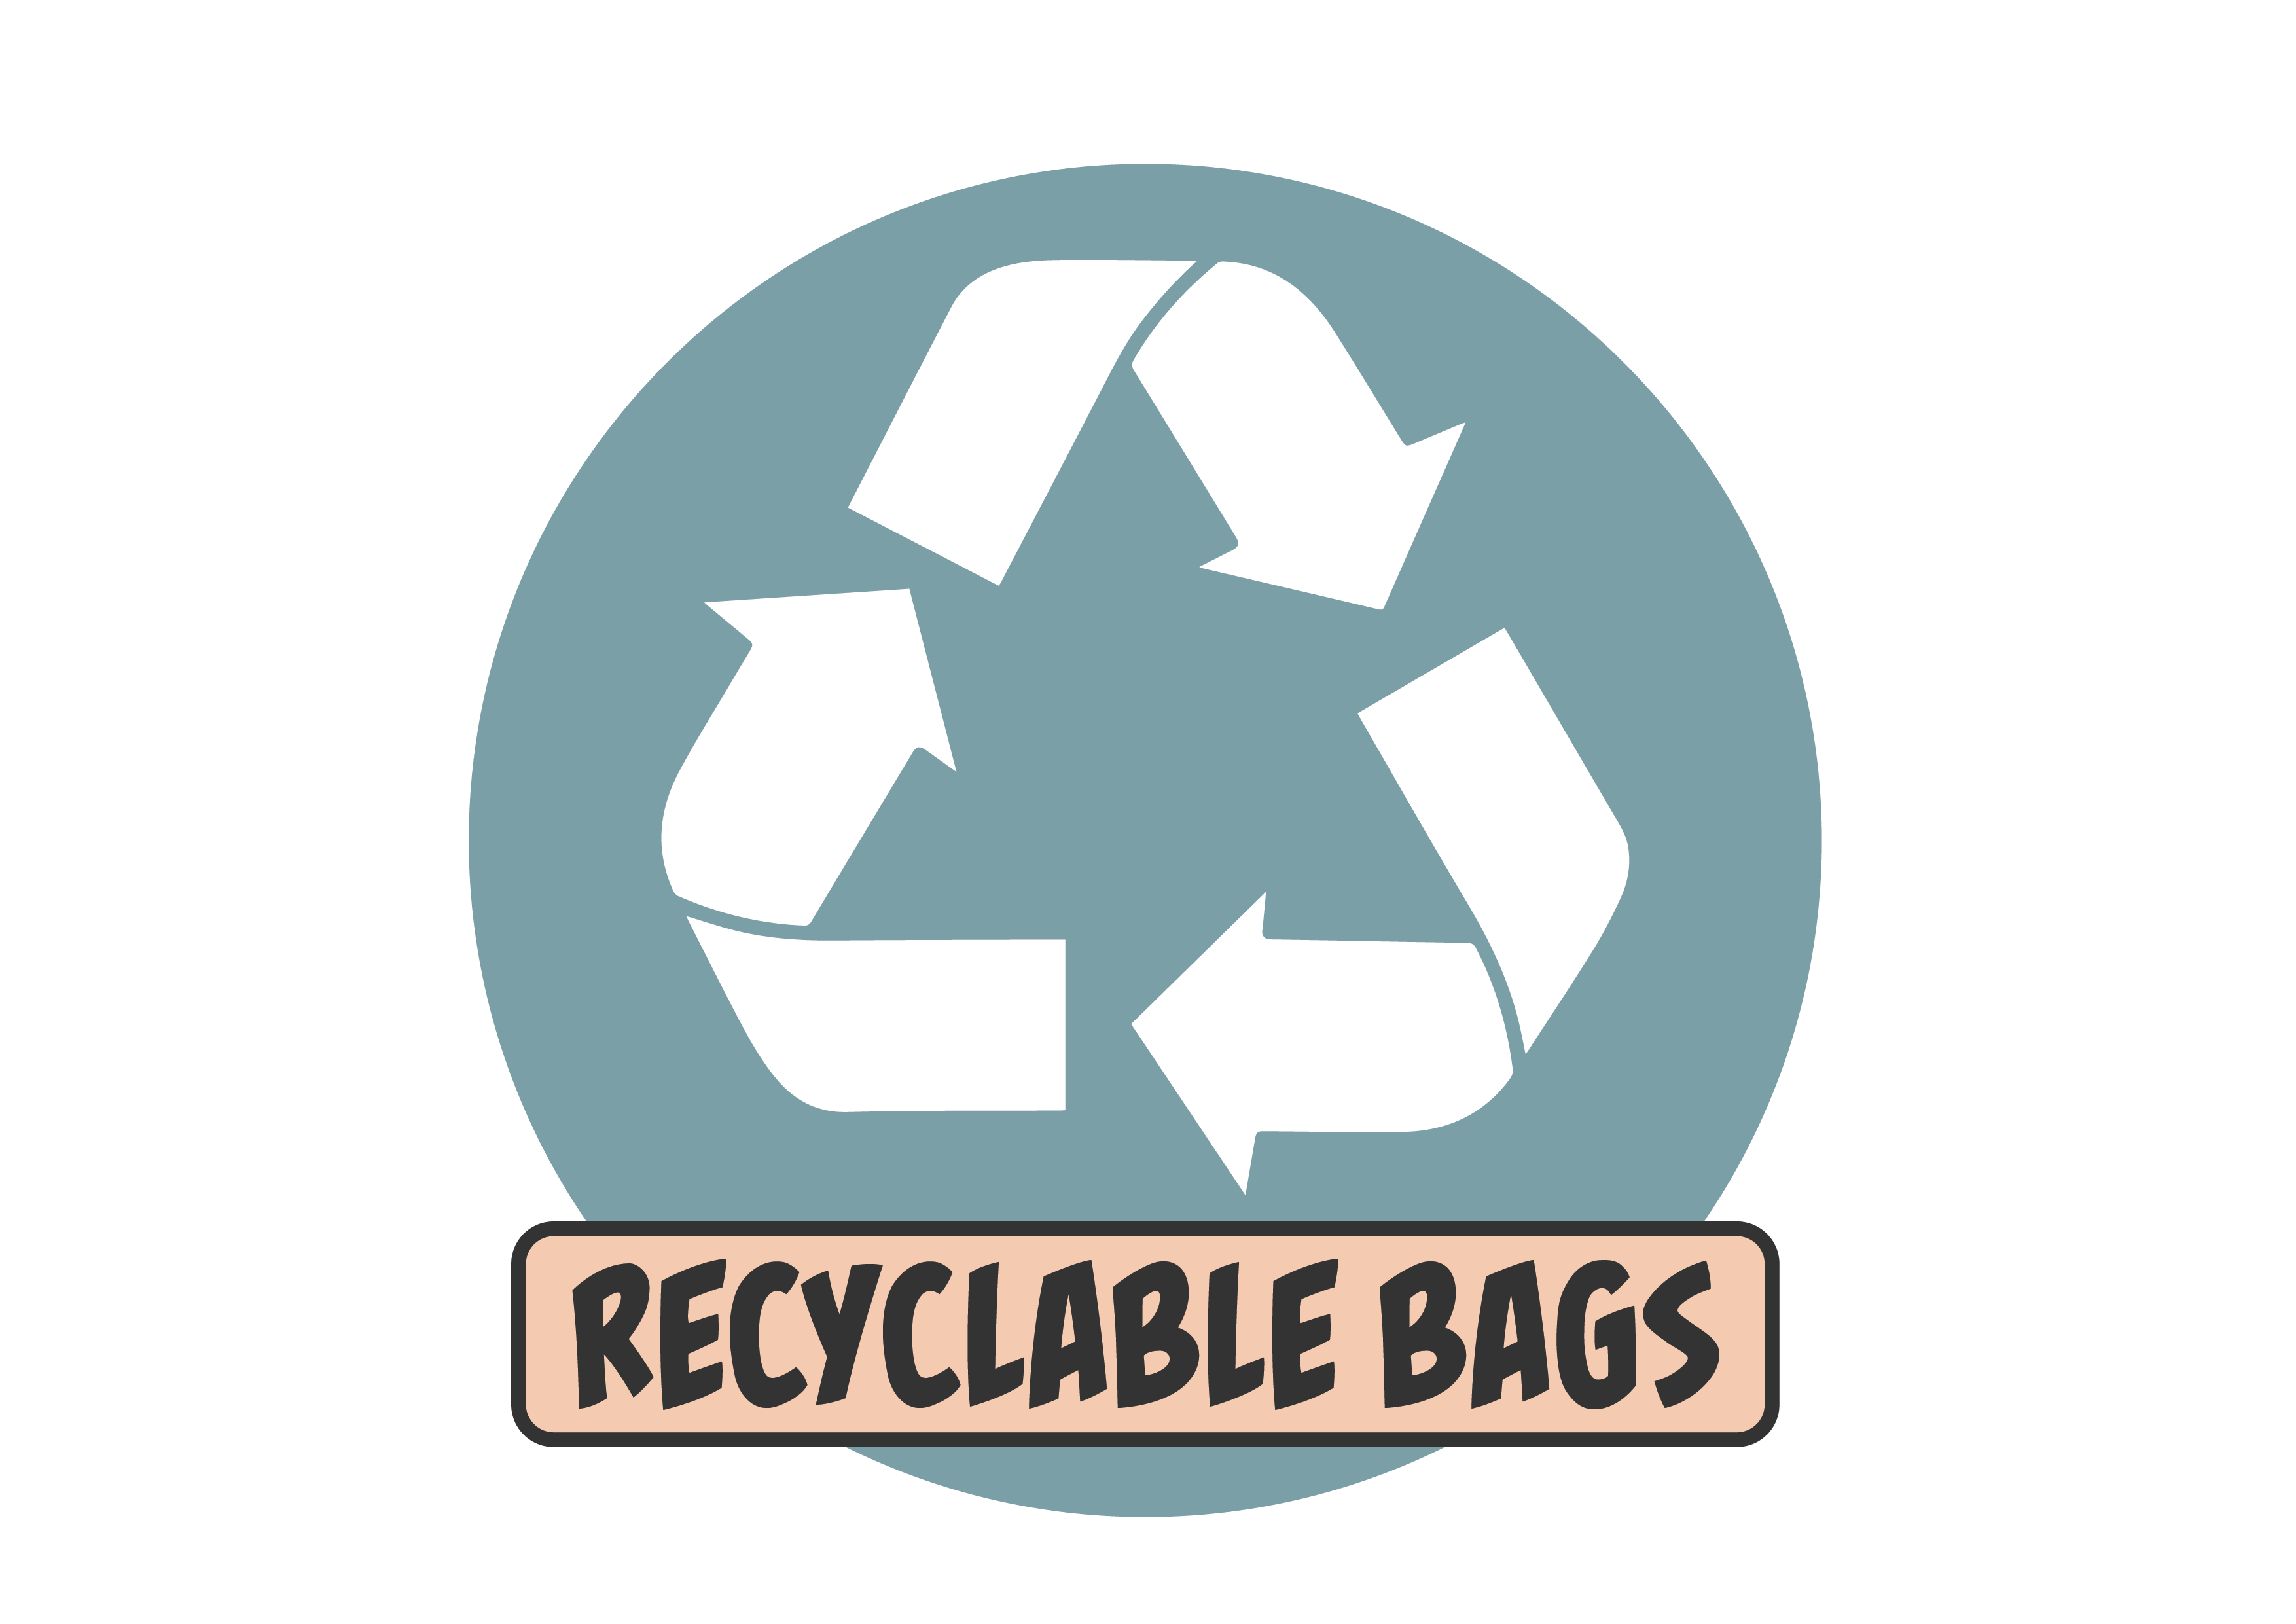 recyclable bags-01